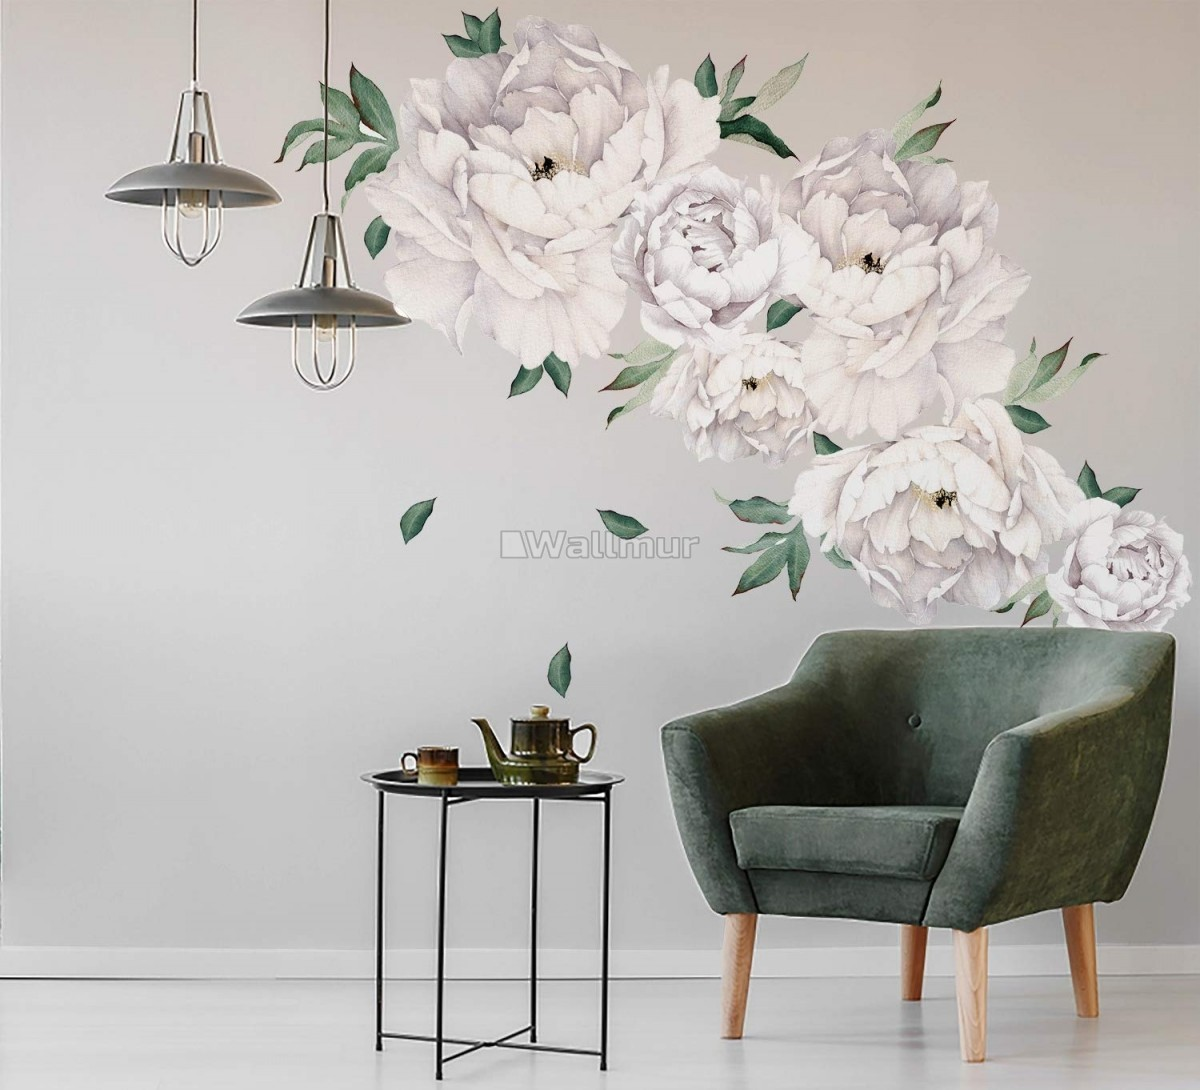 White Peony Floral with Green Leaves Wall Decal Sticker